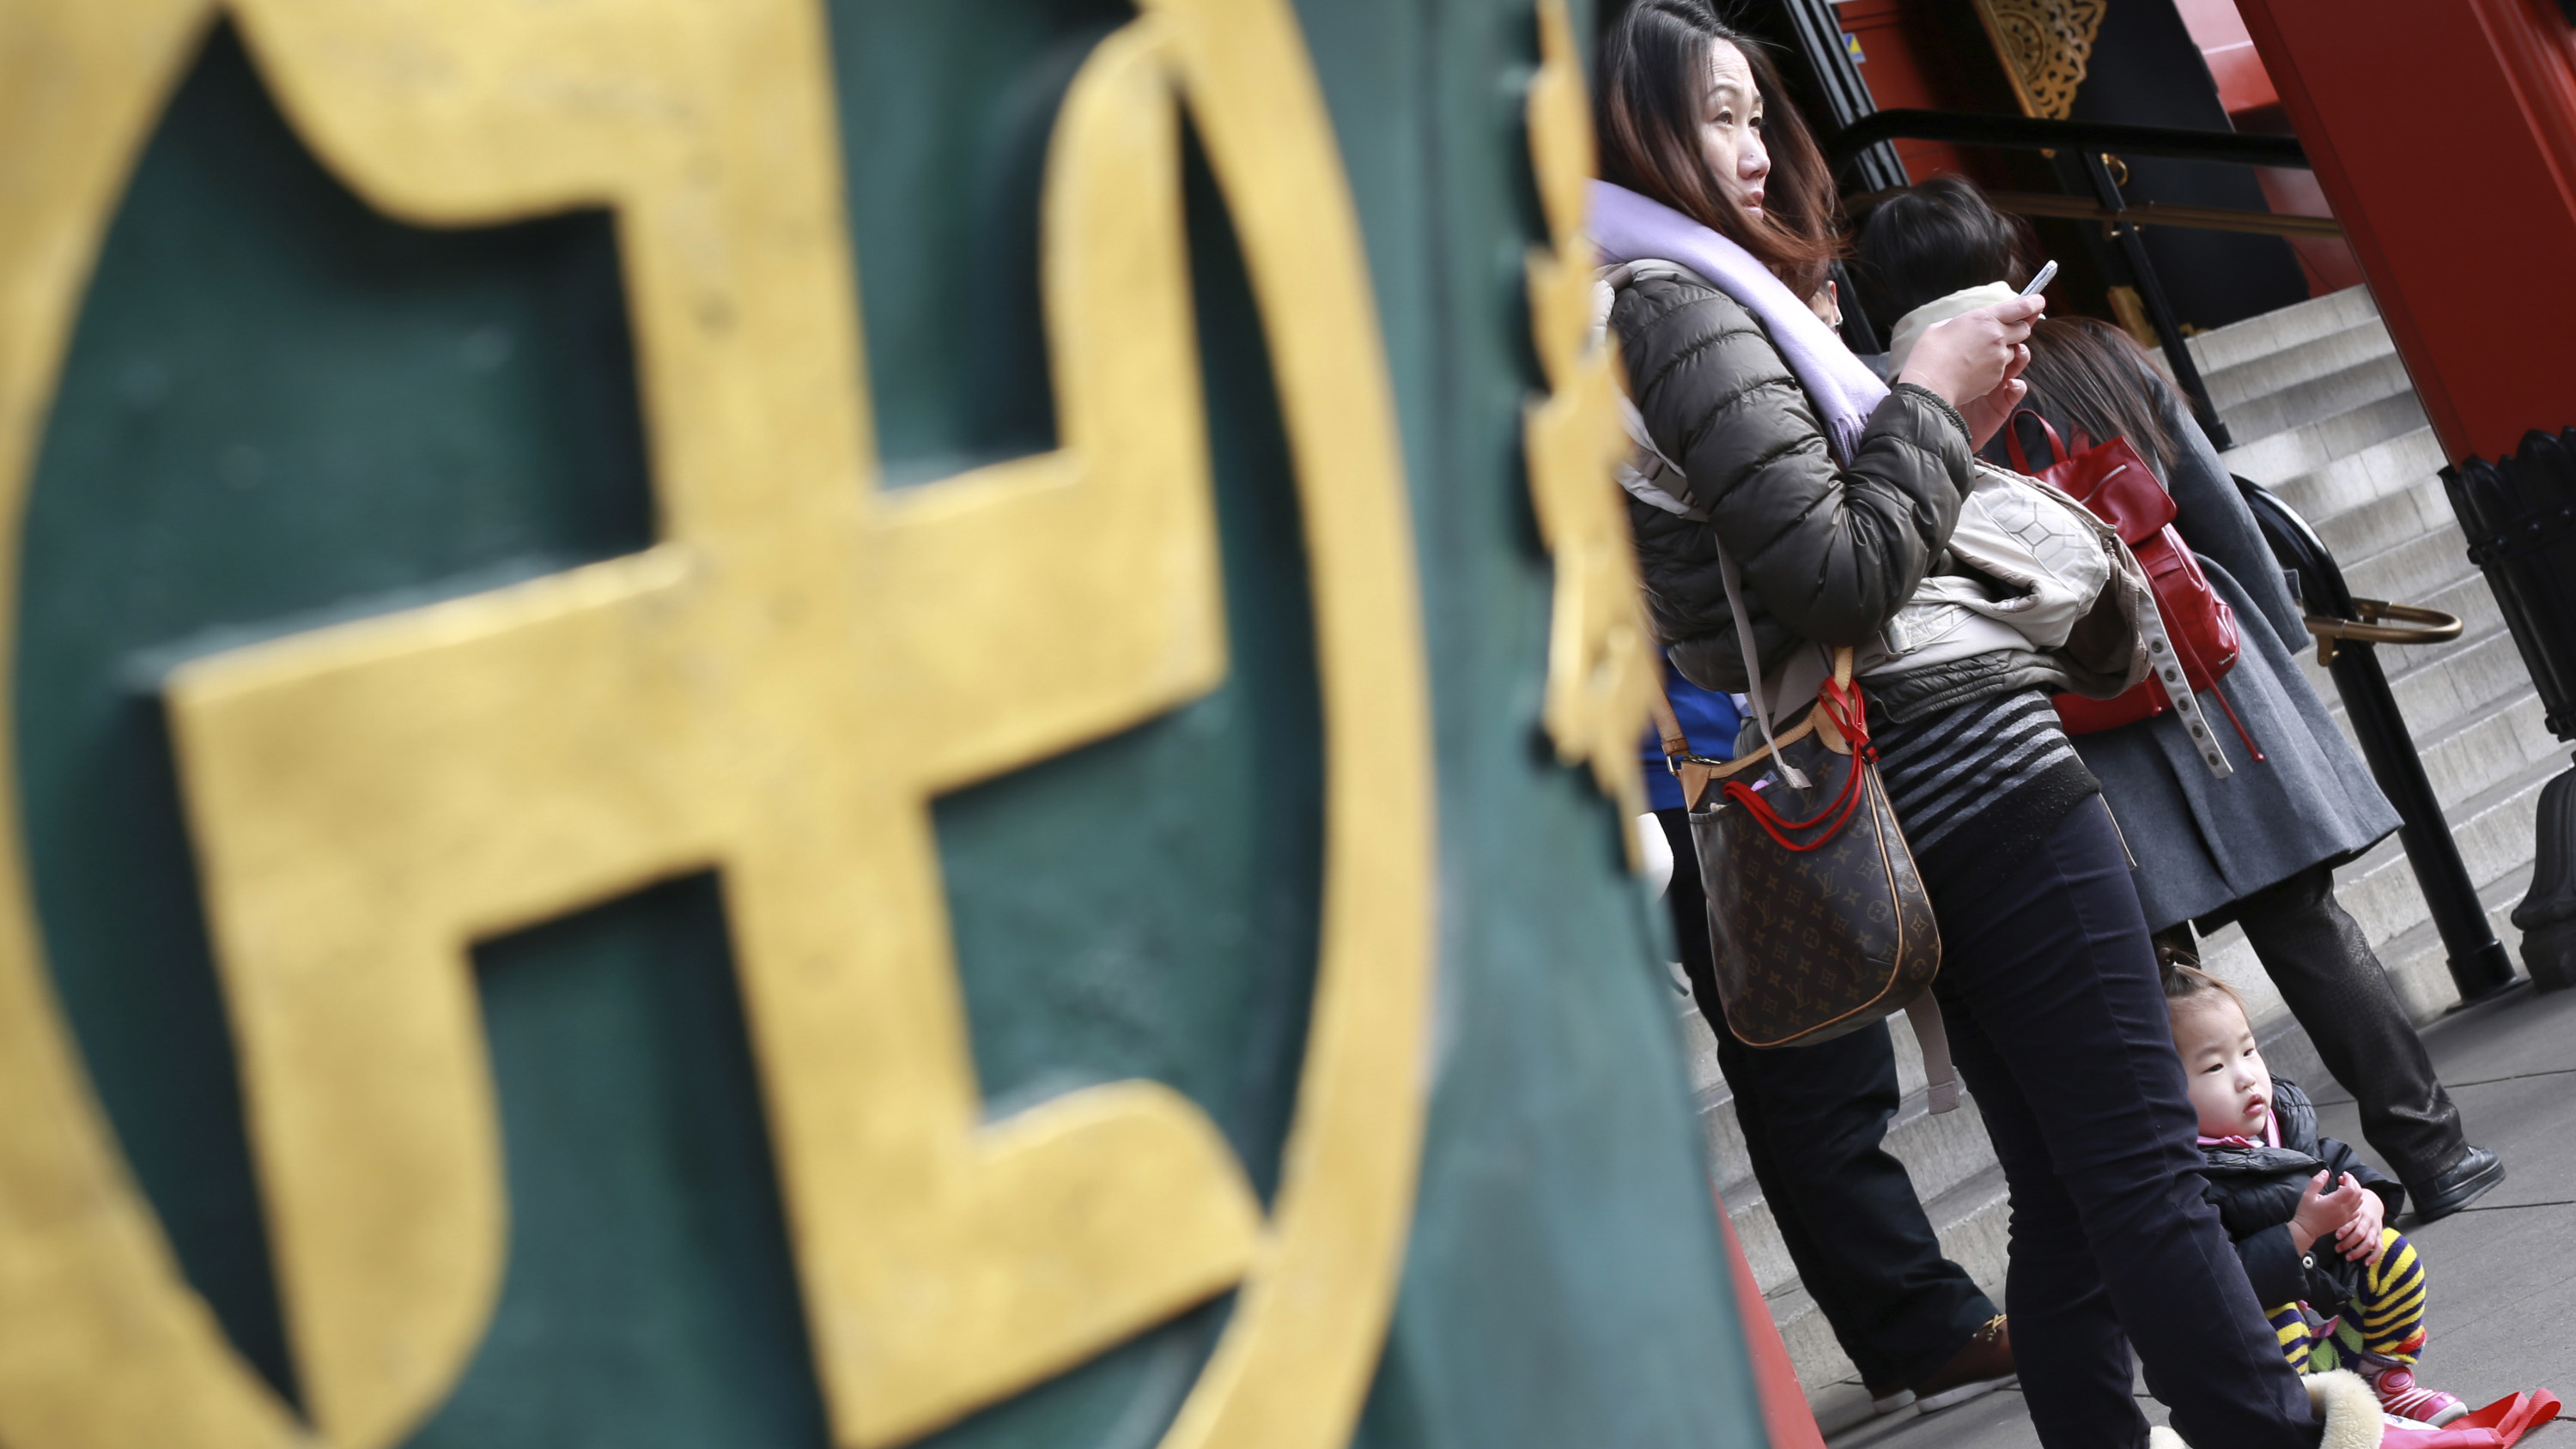 """In this Thursday, Feb. 3, 2016 photo, visitors stand next to a religious ornament with the """"manji"""" symbol, which comes from the ancient Sanskrit and is widely used for centuries to denote Buddhist temples on maps and elsewhere, at a temple in Tokyo. As Japan gears up to host the 2020 Tokyo Olympics and caters to a surging influx of foreign visitors, the country faces a cultural dilemma: Should it stop identifying Buddhist temples on maps with the traditional """"manji"""" symbol that is often confused with a Nazi swastika? (AP Photo/Eugene Hoshiko)"""